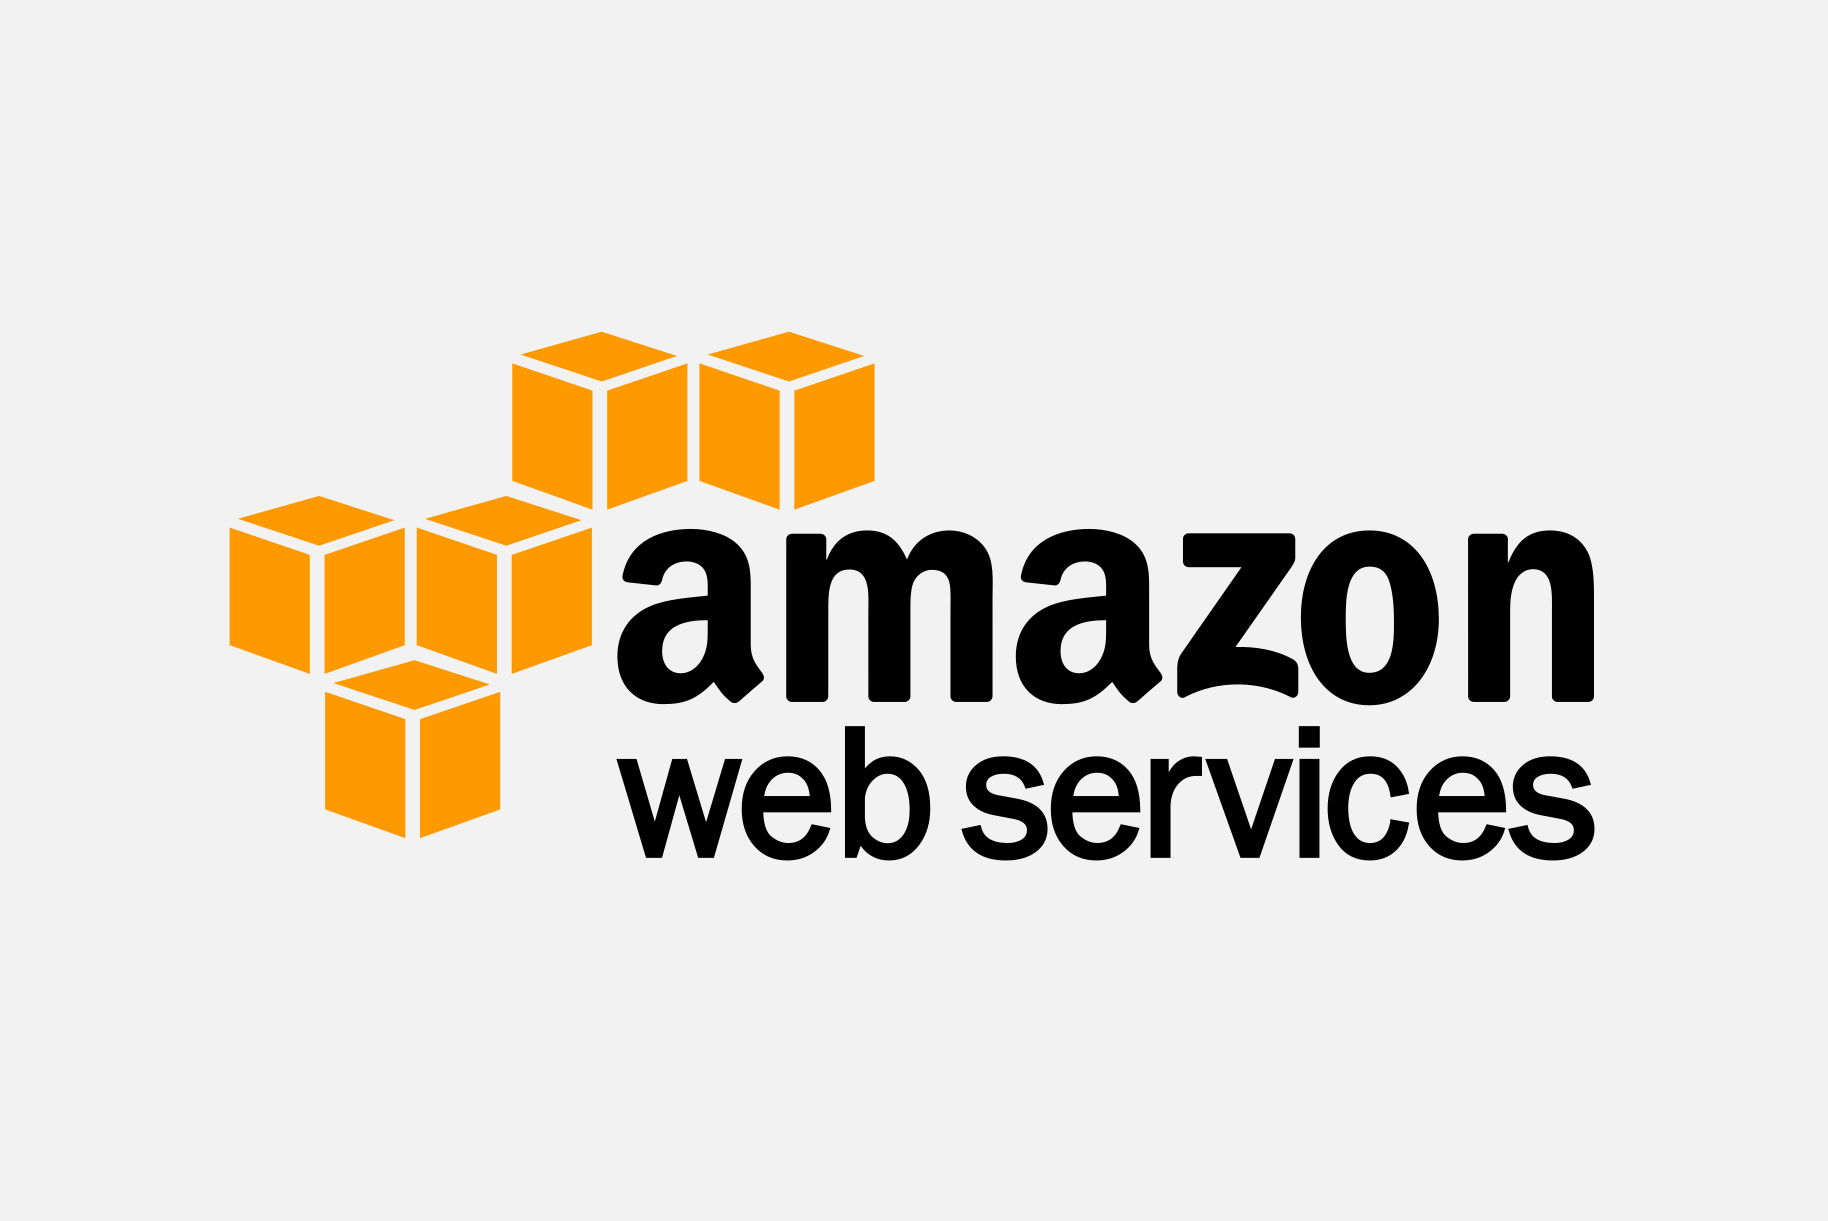 Aws: our vision - Powered by AWS Serverless we enable your enterprise to simplify your operational landscape, catalyze processes and re-invent digital & business model innovation.